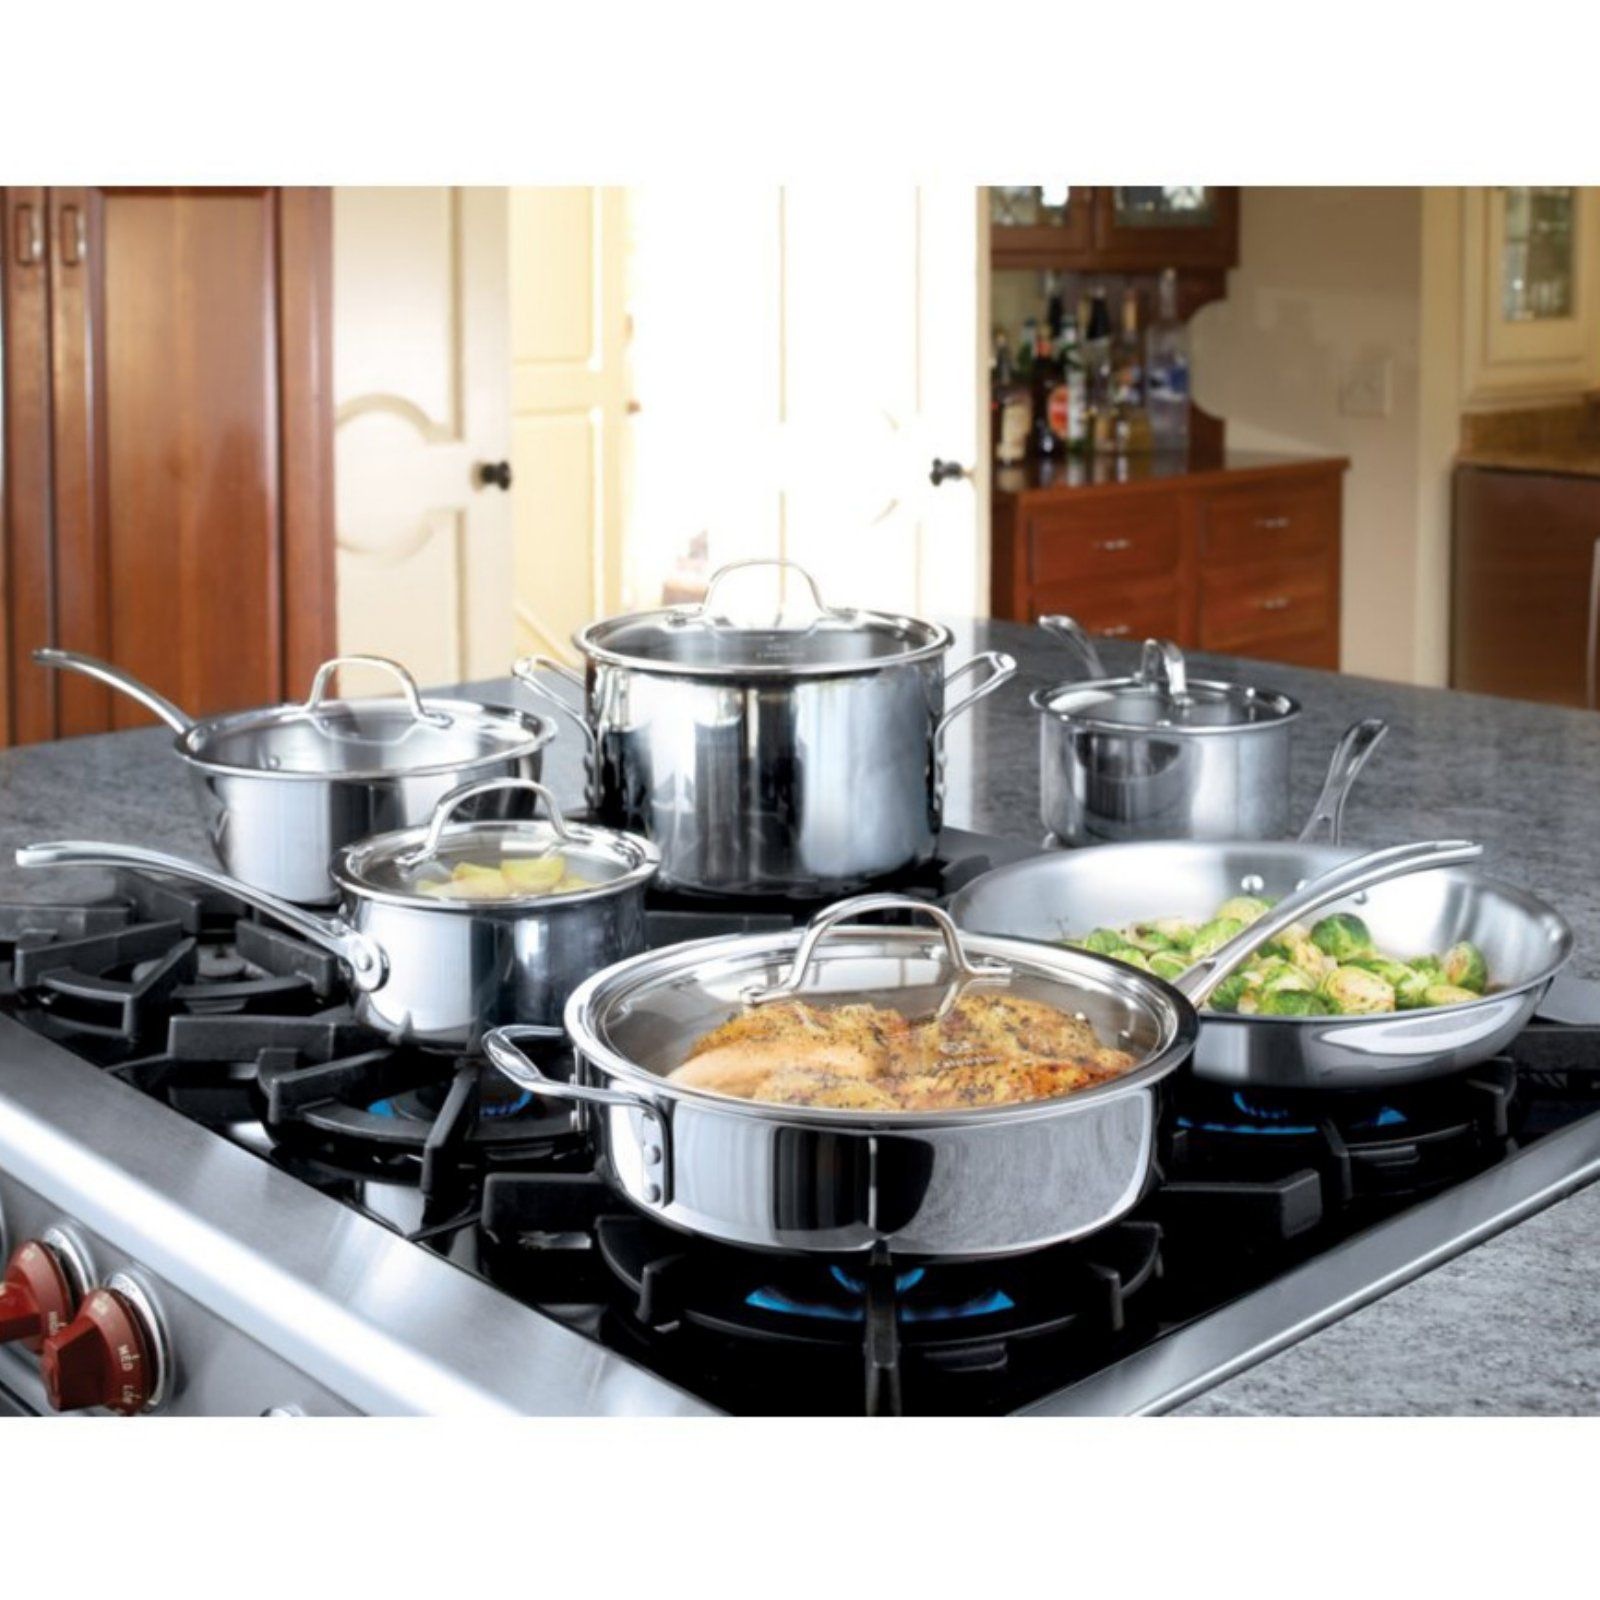 Calphalon Tri Ply Stainless Steel 13 Piece Cookware Set